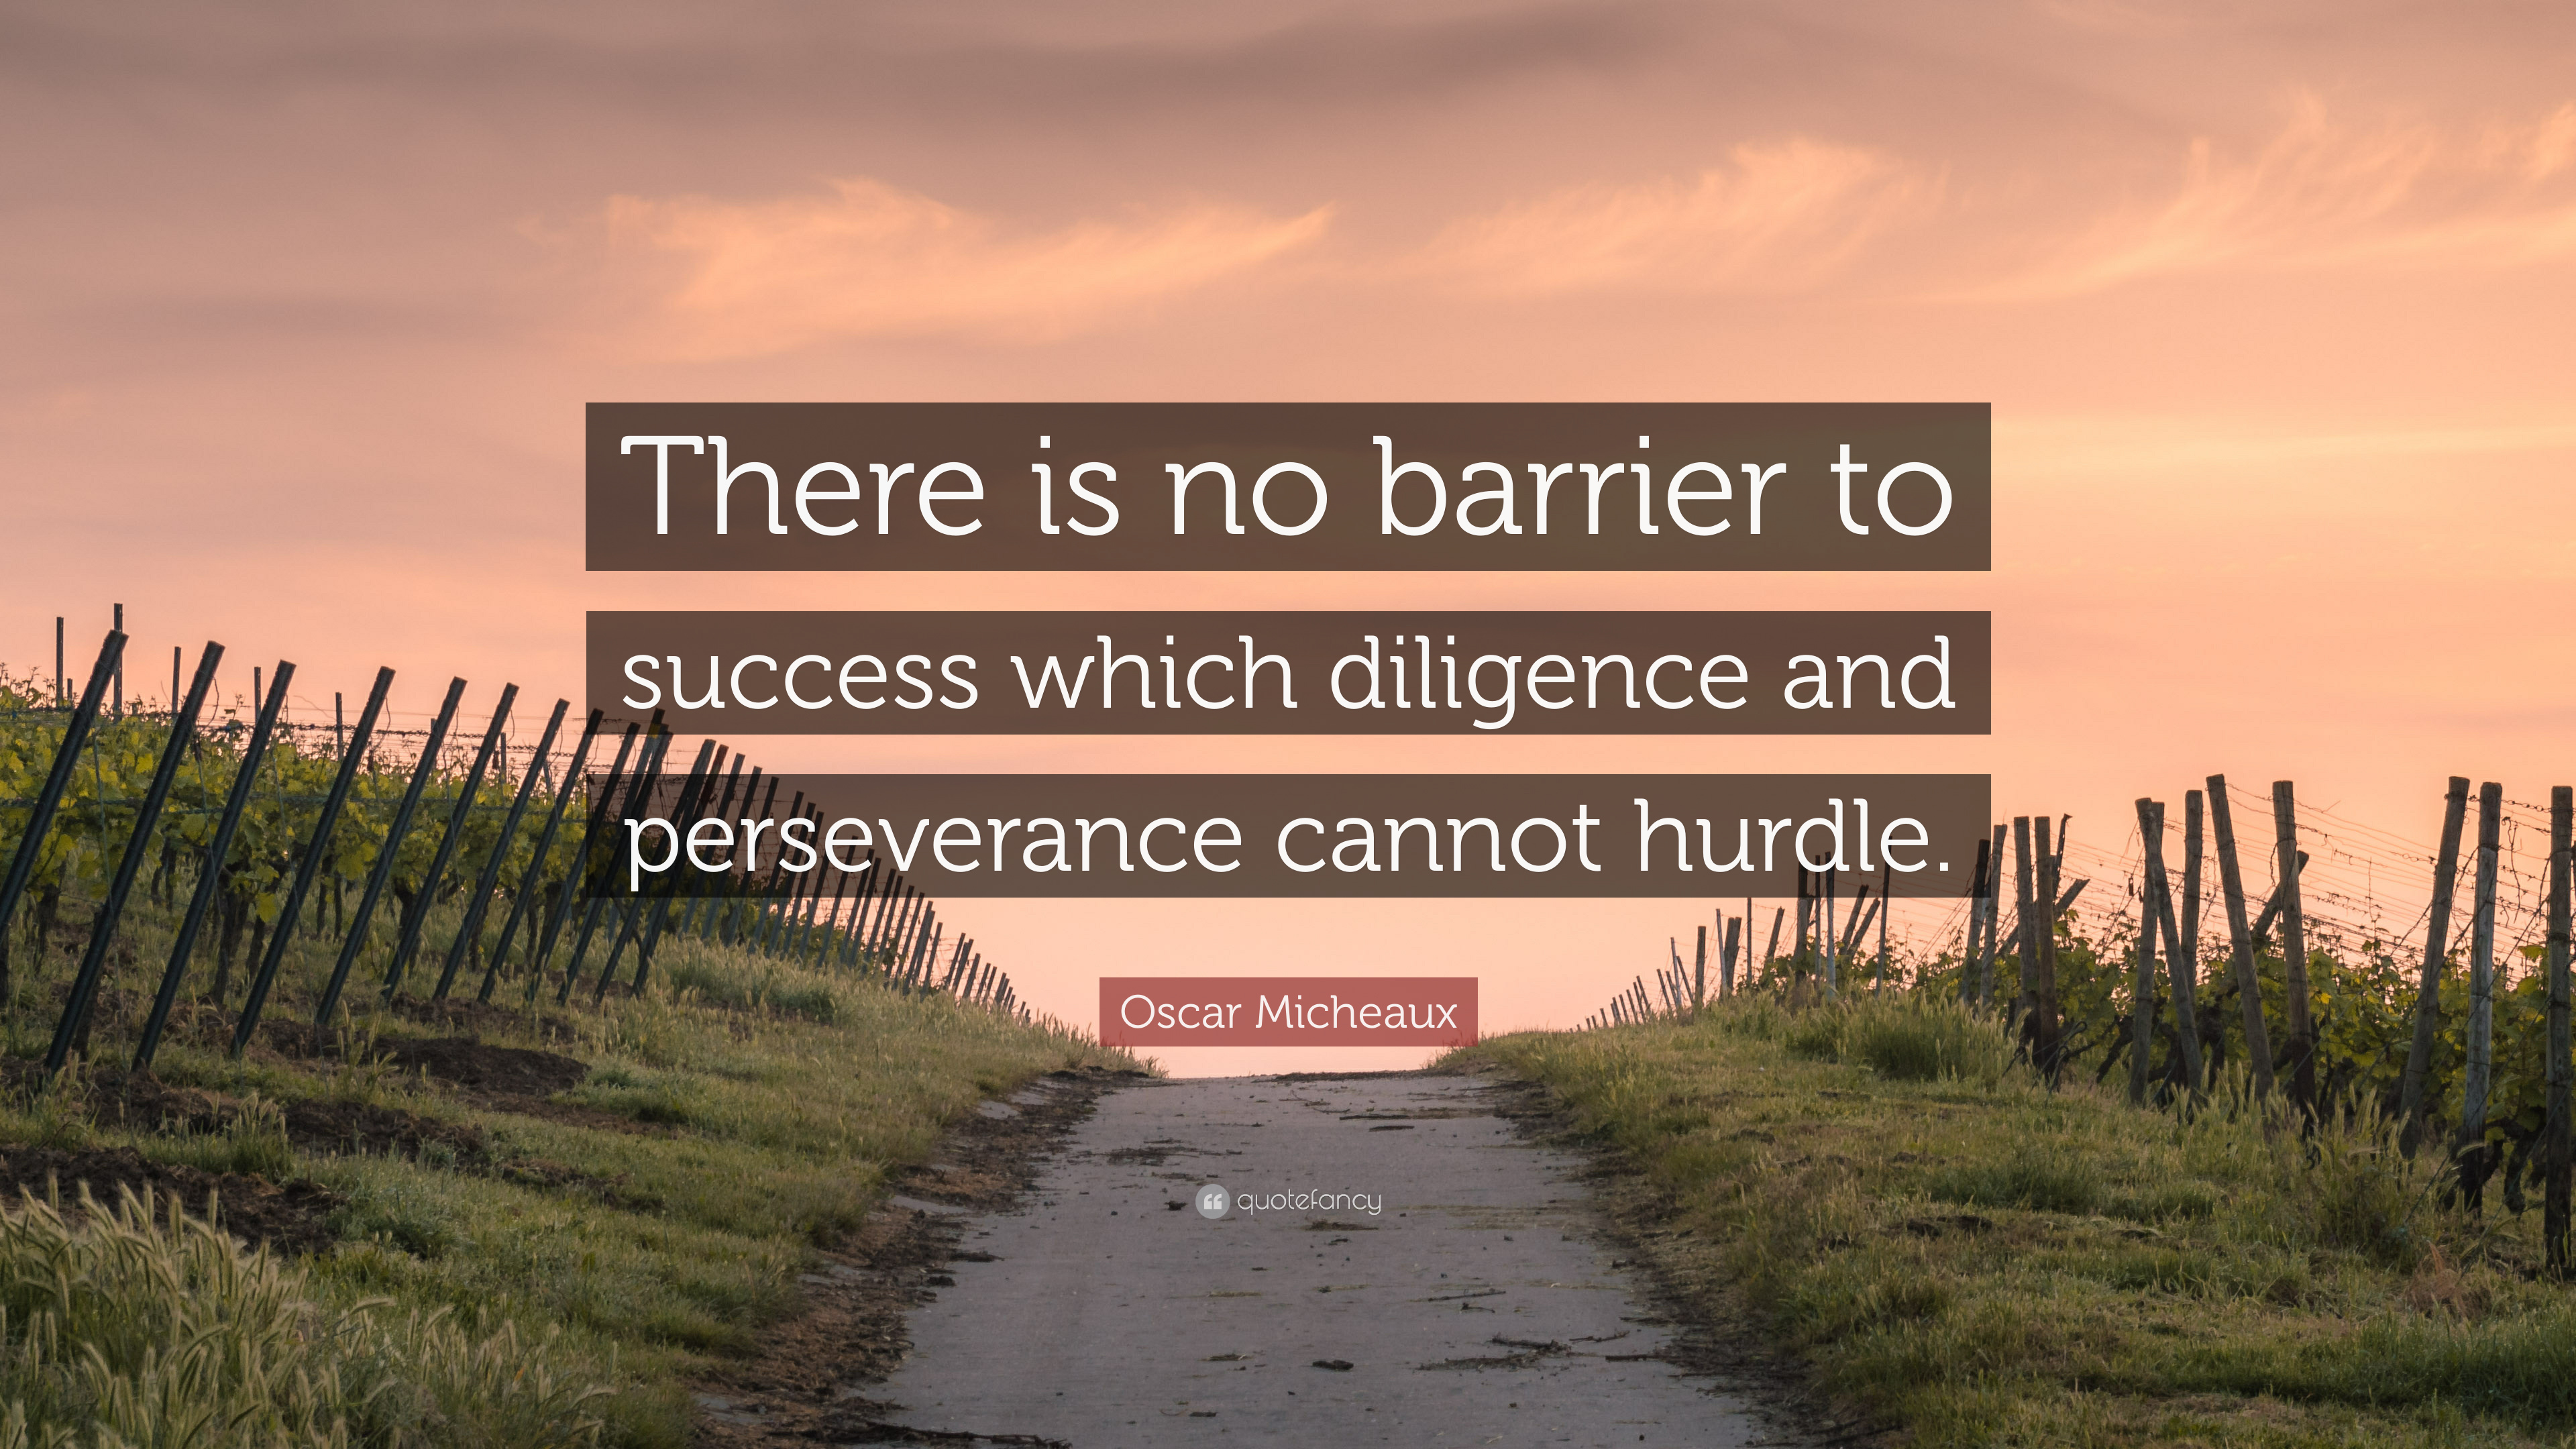 Diligence and perseverance